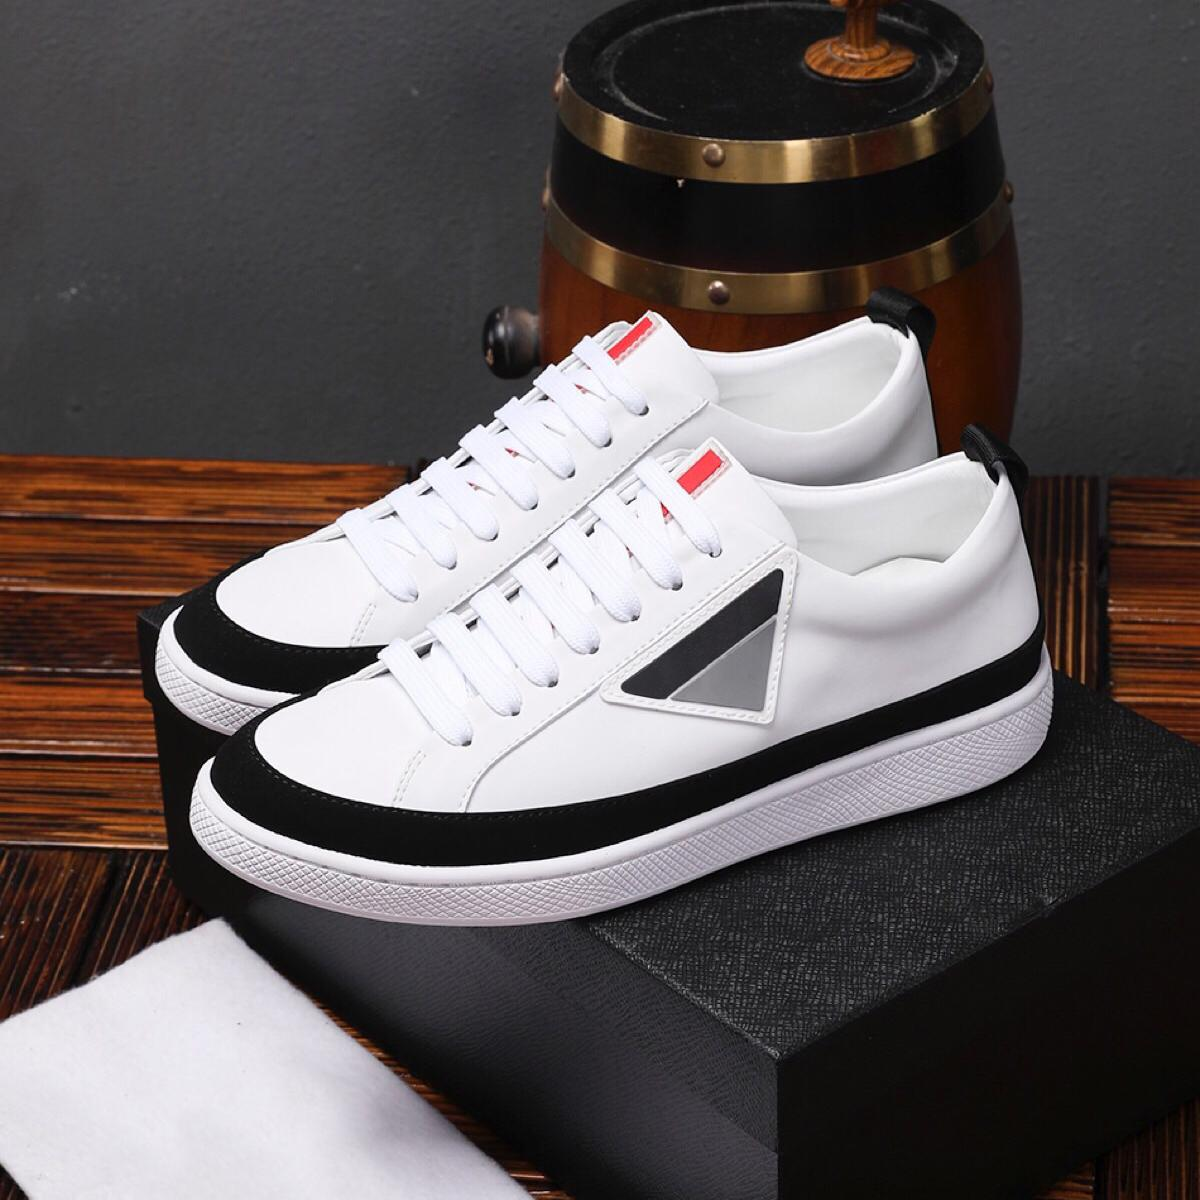 2019 Mens Designer Casual Shoes Geometric Brand Fashion Sneakers Lace Up Luxury White Dress Top Quality with Box 9962CE